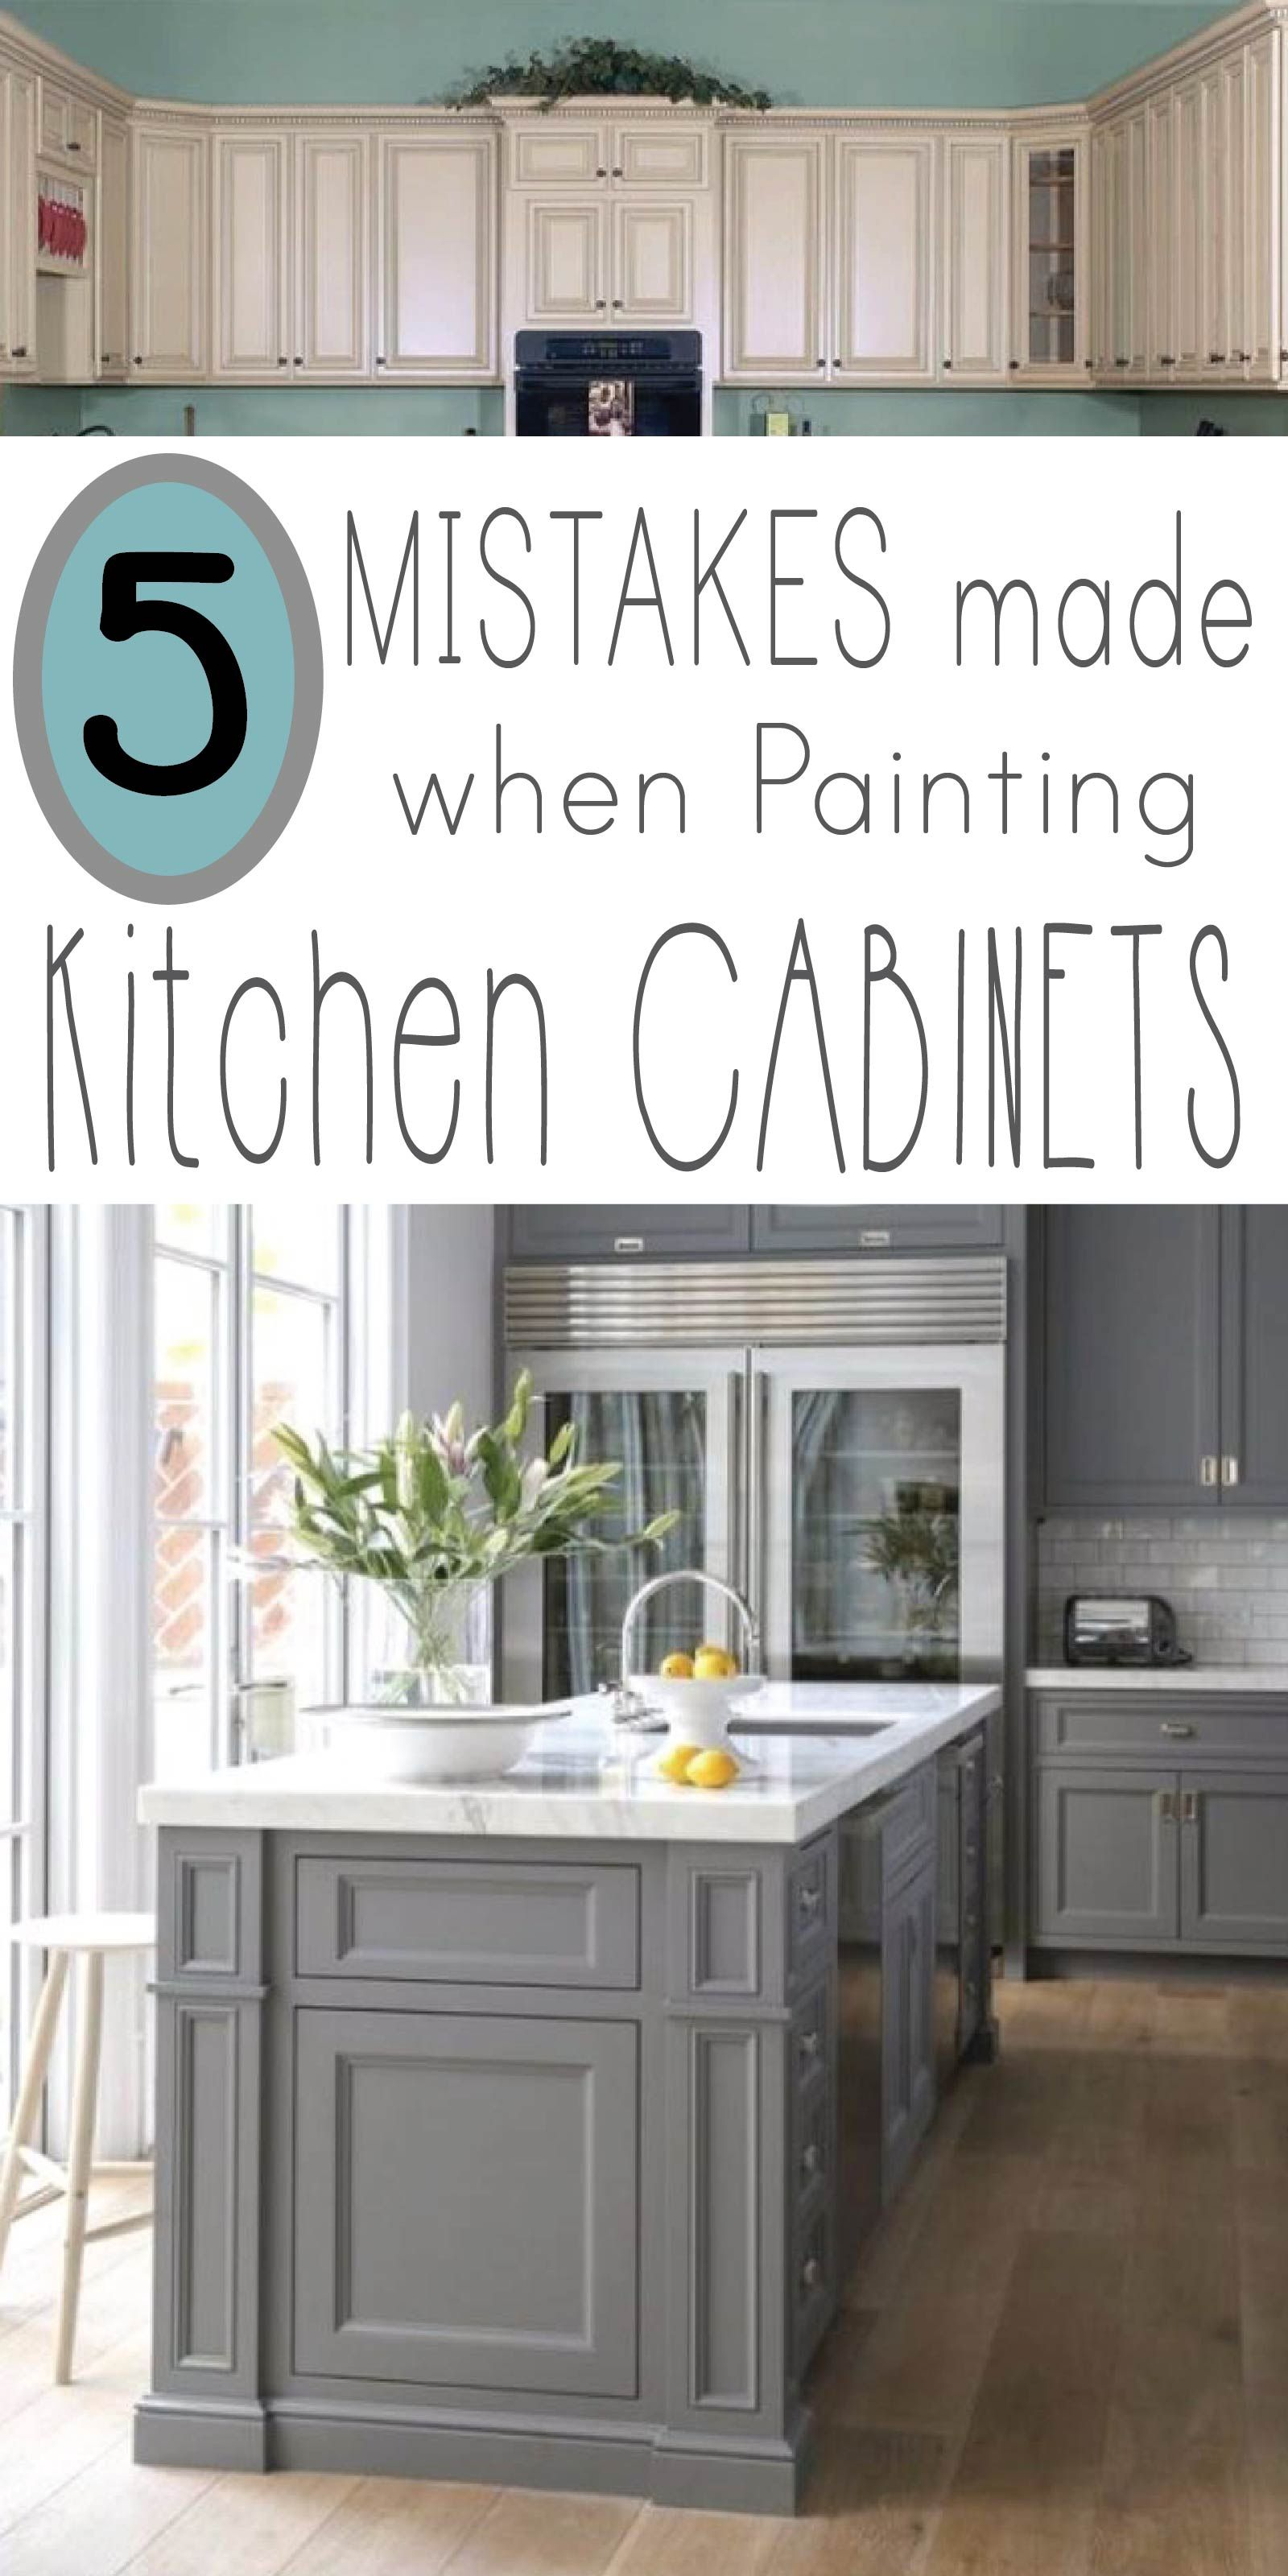 Note On Last One, Do Not Apply Polyurethane On White Paint, It Will Turn It  Yellow! LEARN 5 Mistakes Made When Painting Kitchen Cabinets, So Your  Makeover ...